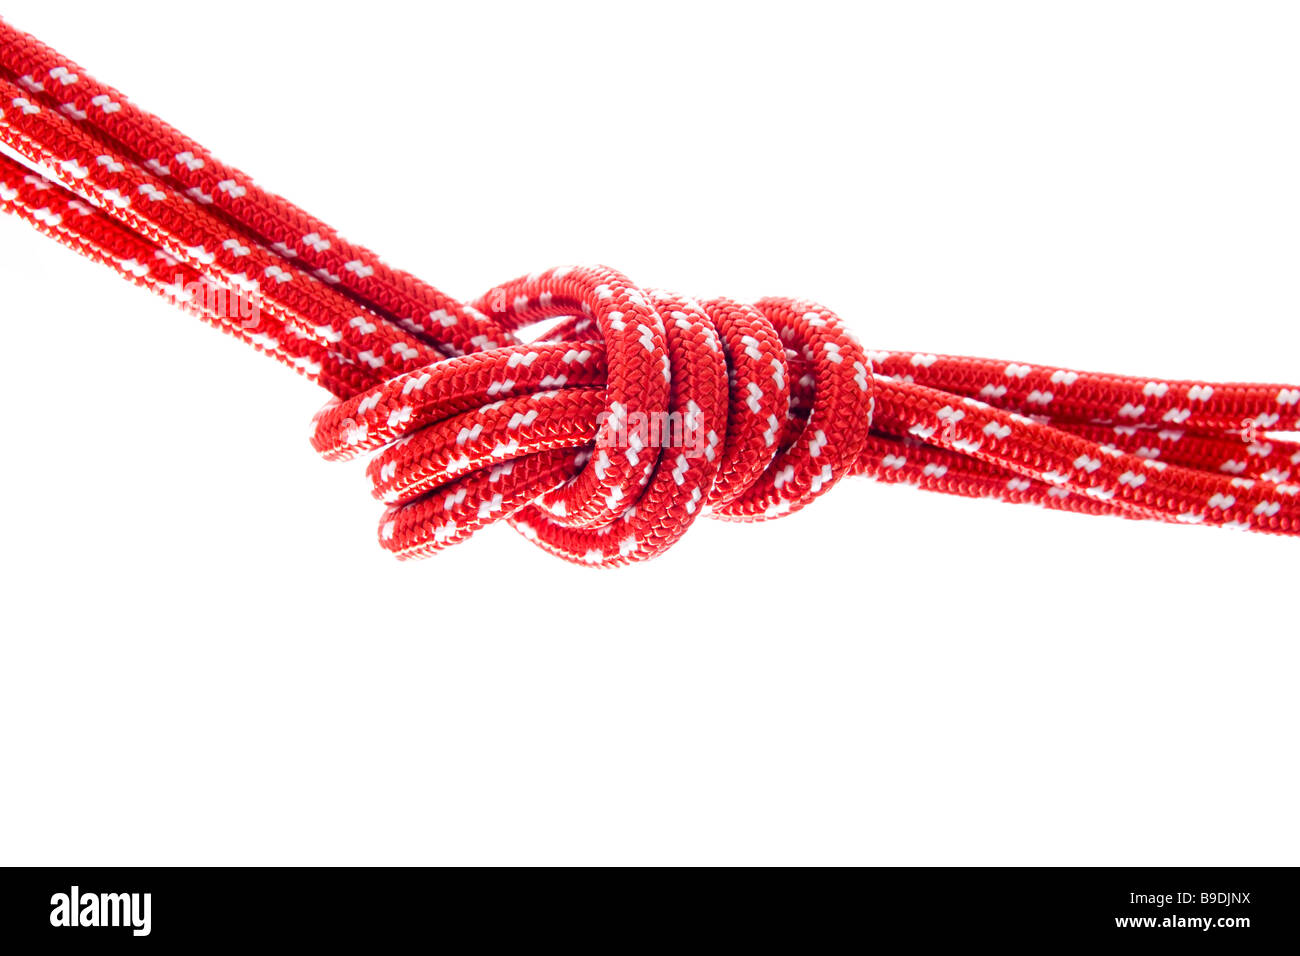 Climbing rope - Stock Image